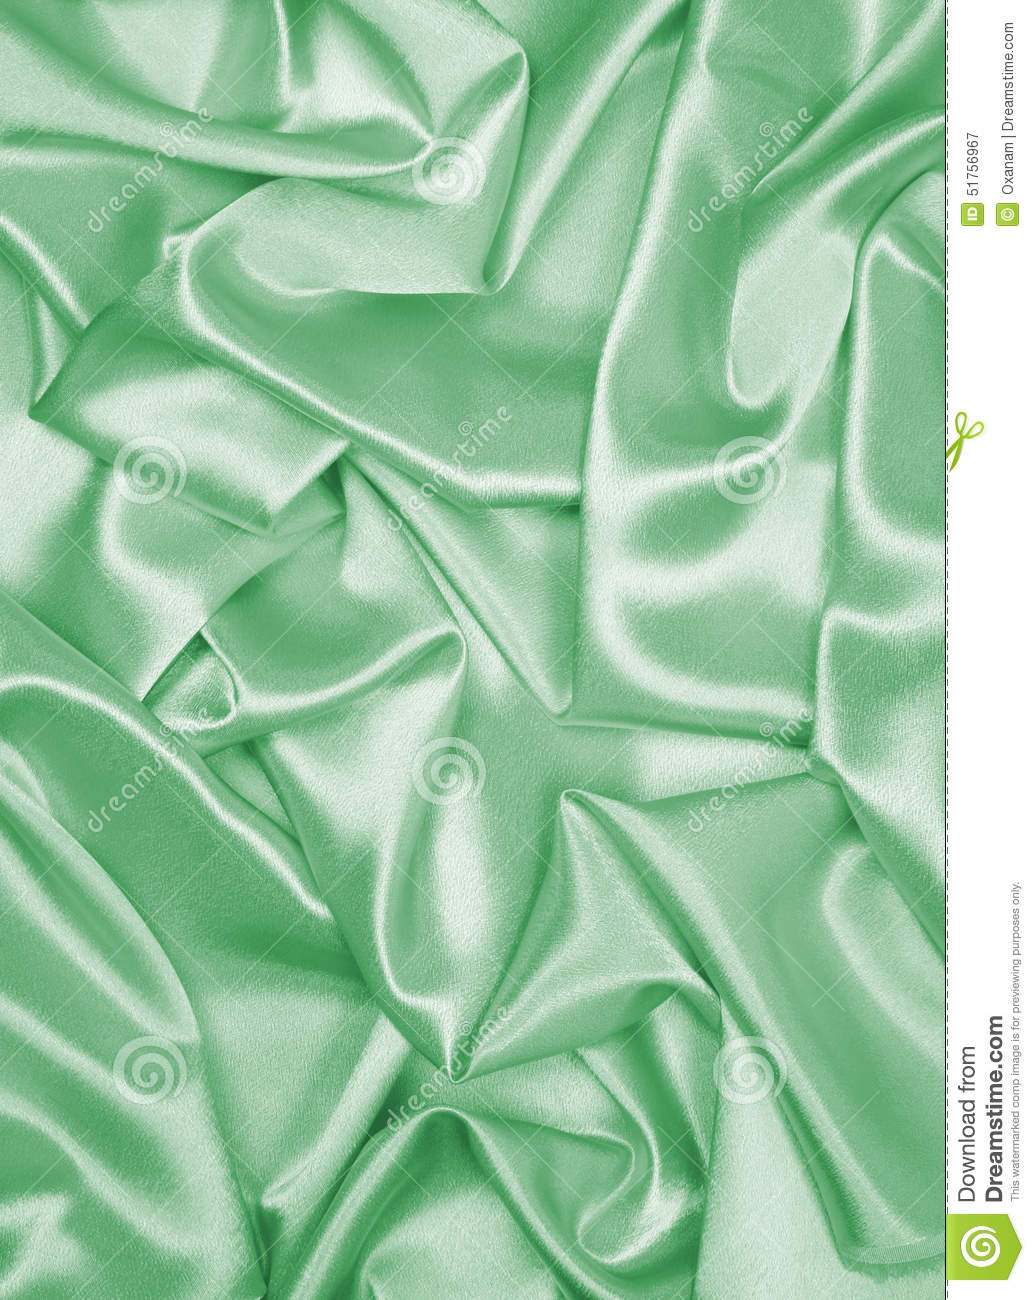 smooth elegant green silk or satin as background stock